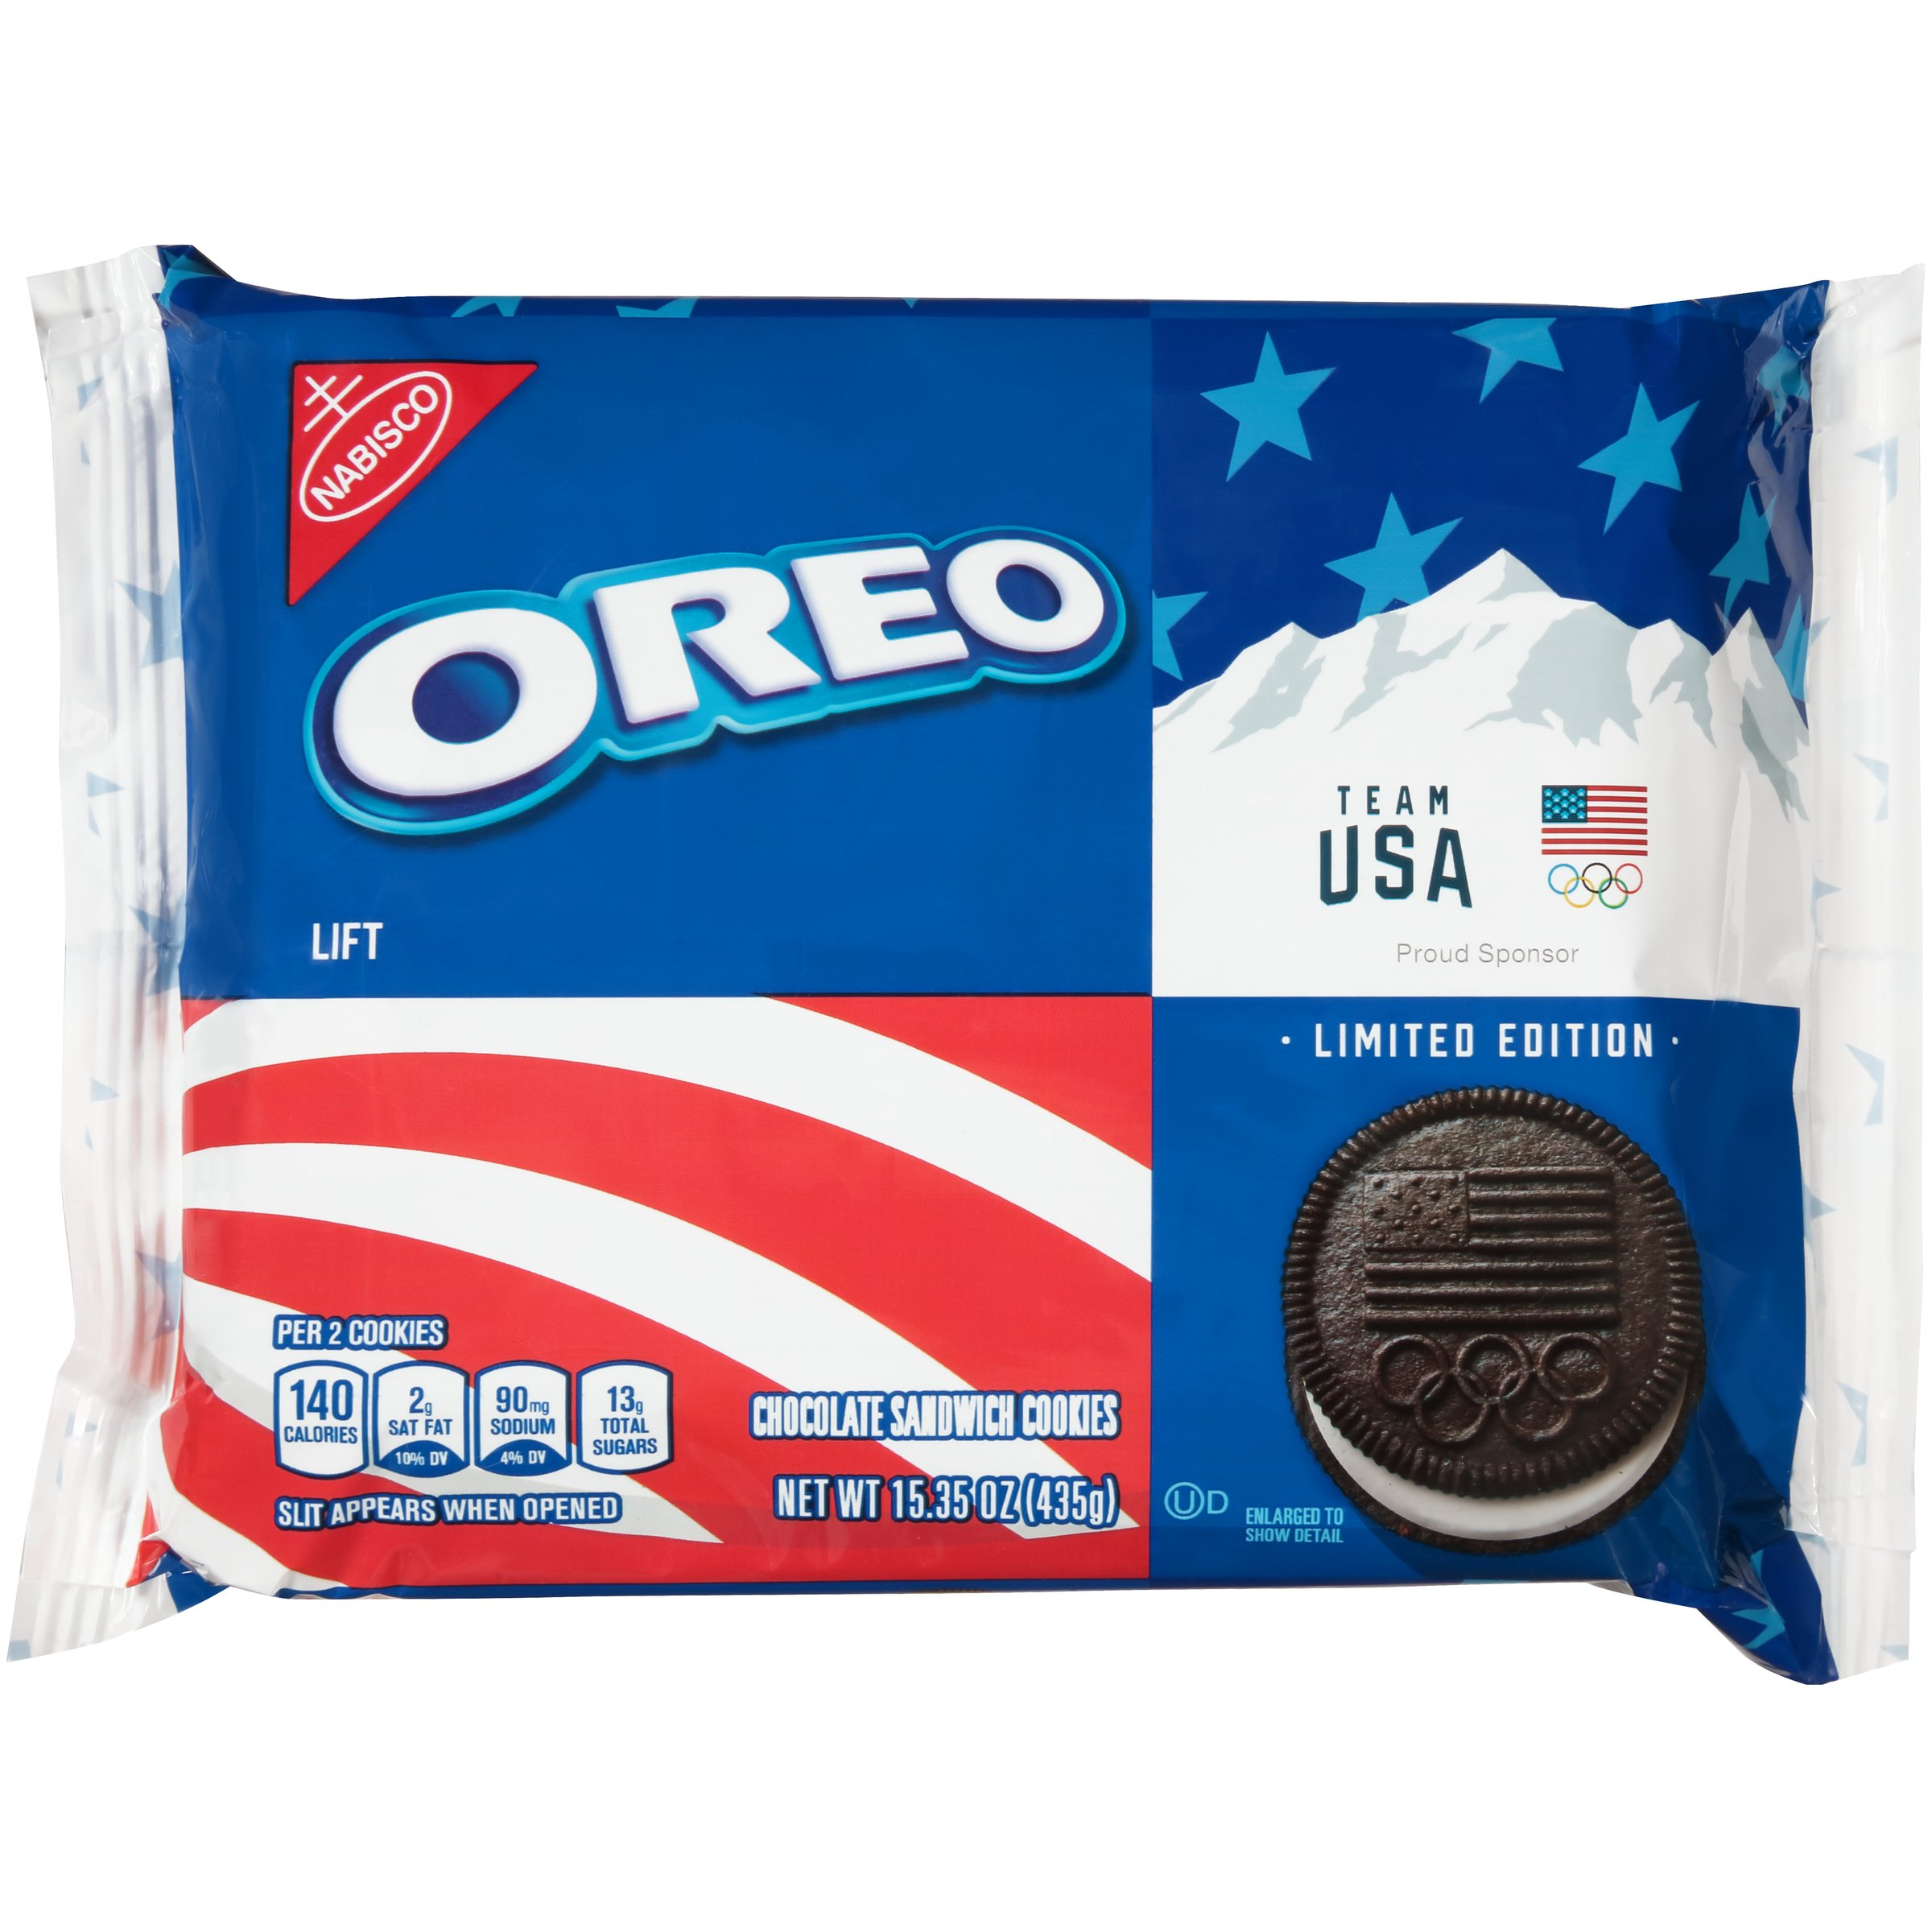 Team USA Oreo Cookies